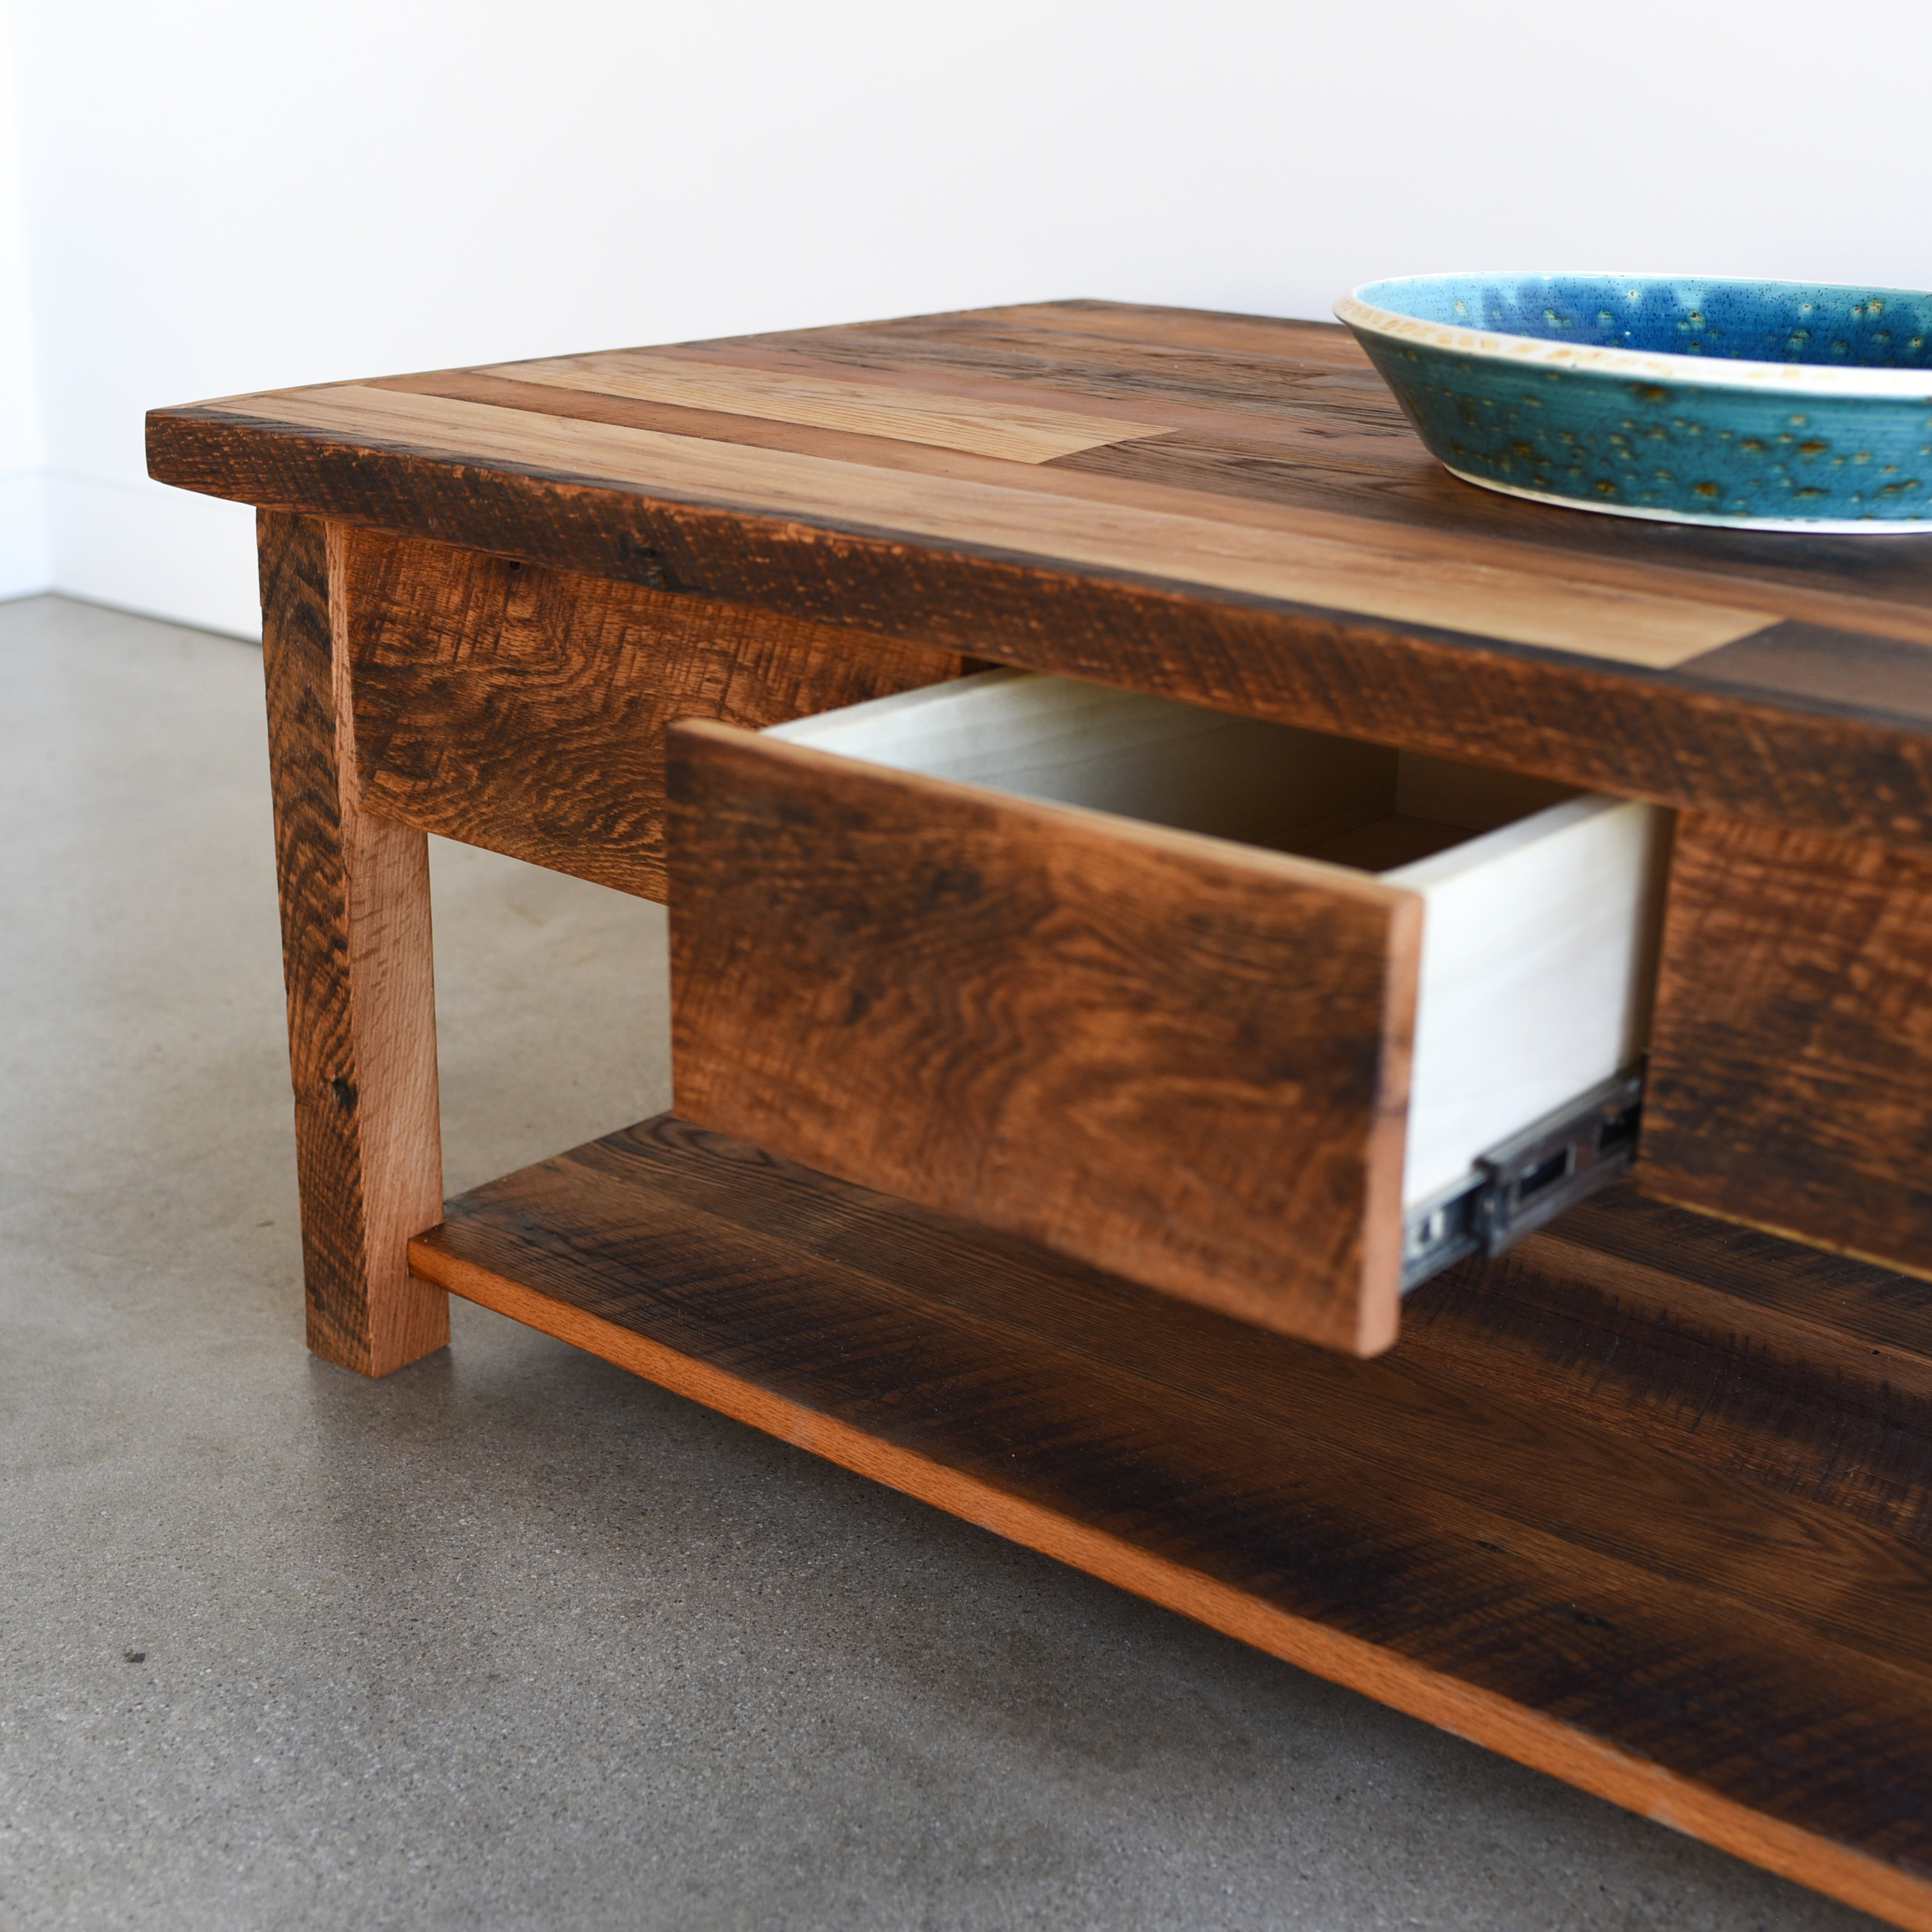 Reclaimed Patchwork Wood Coffee Table Lower Shelf Hidden Drawer What We Make